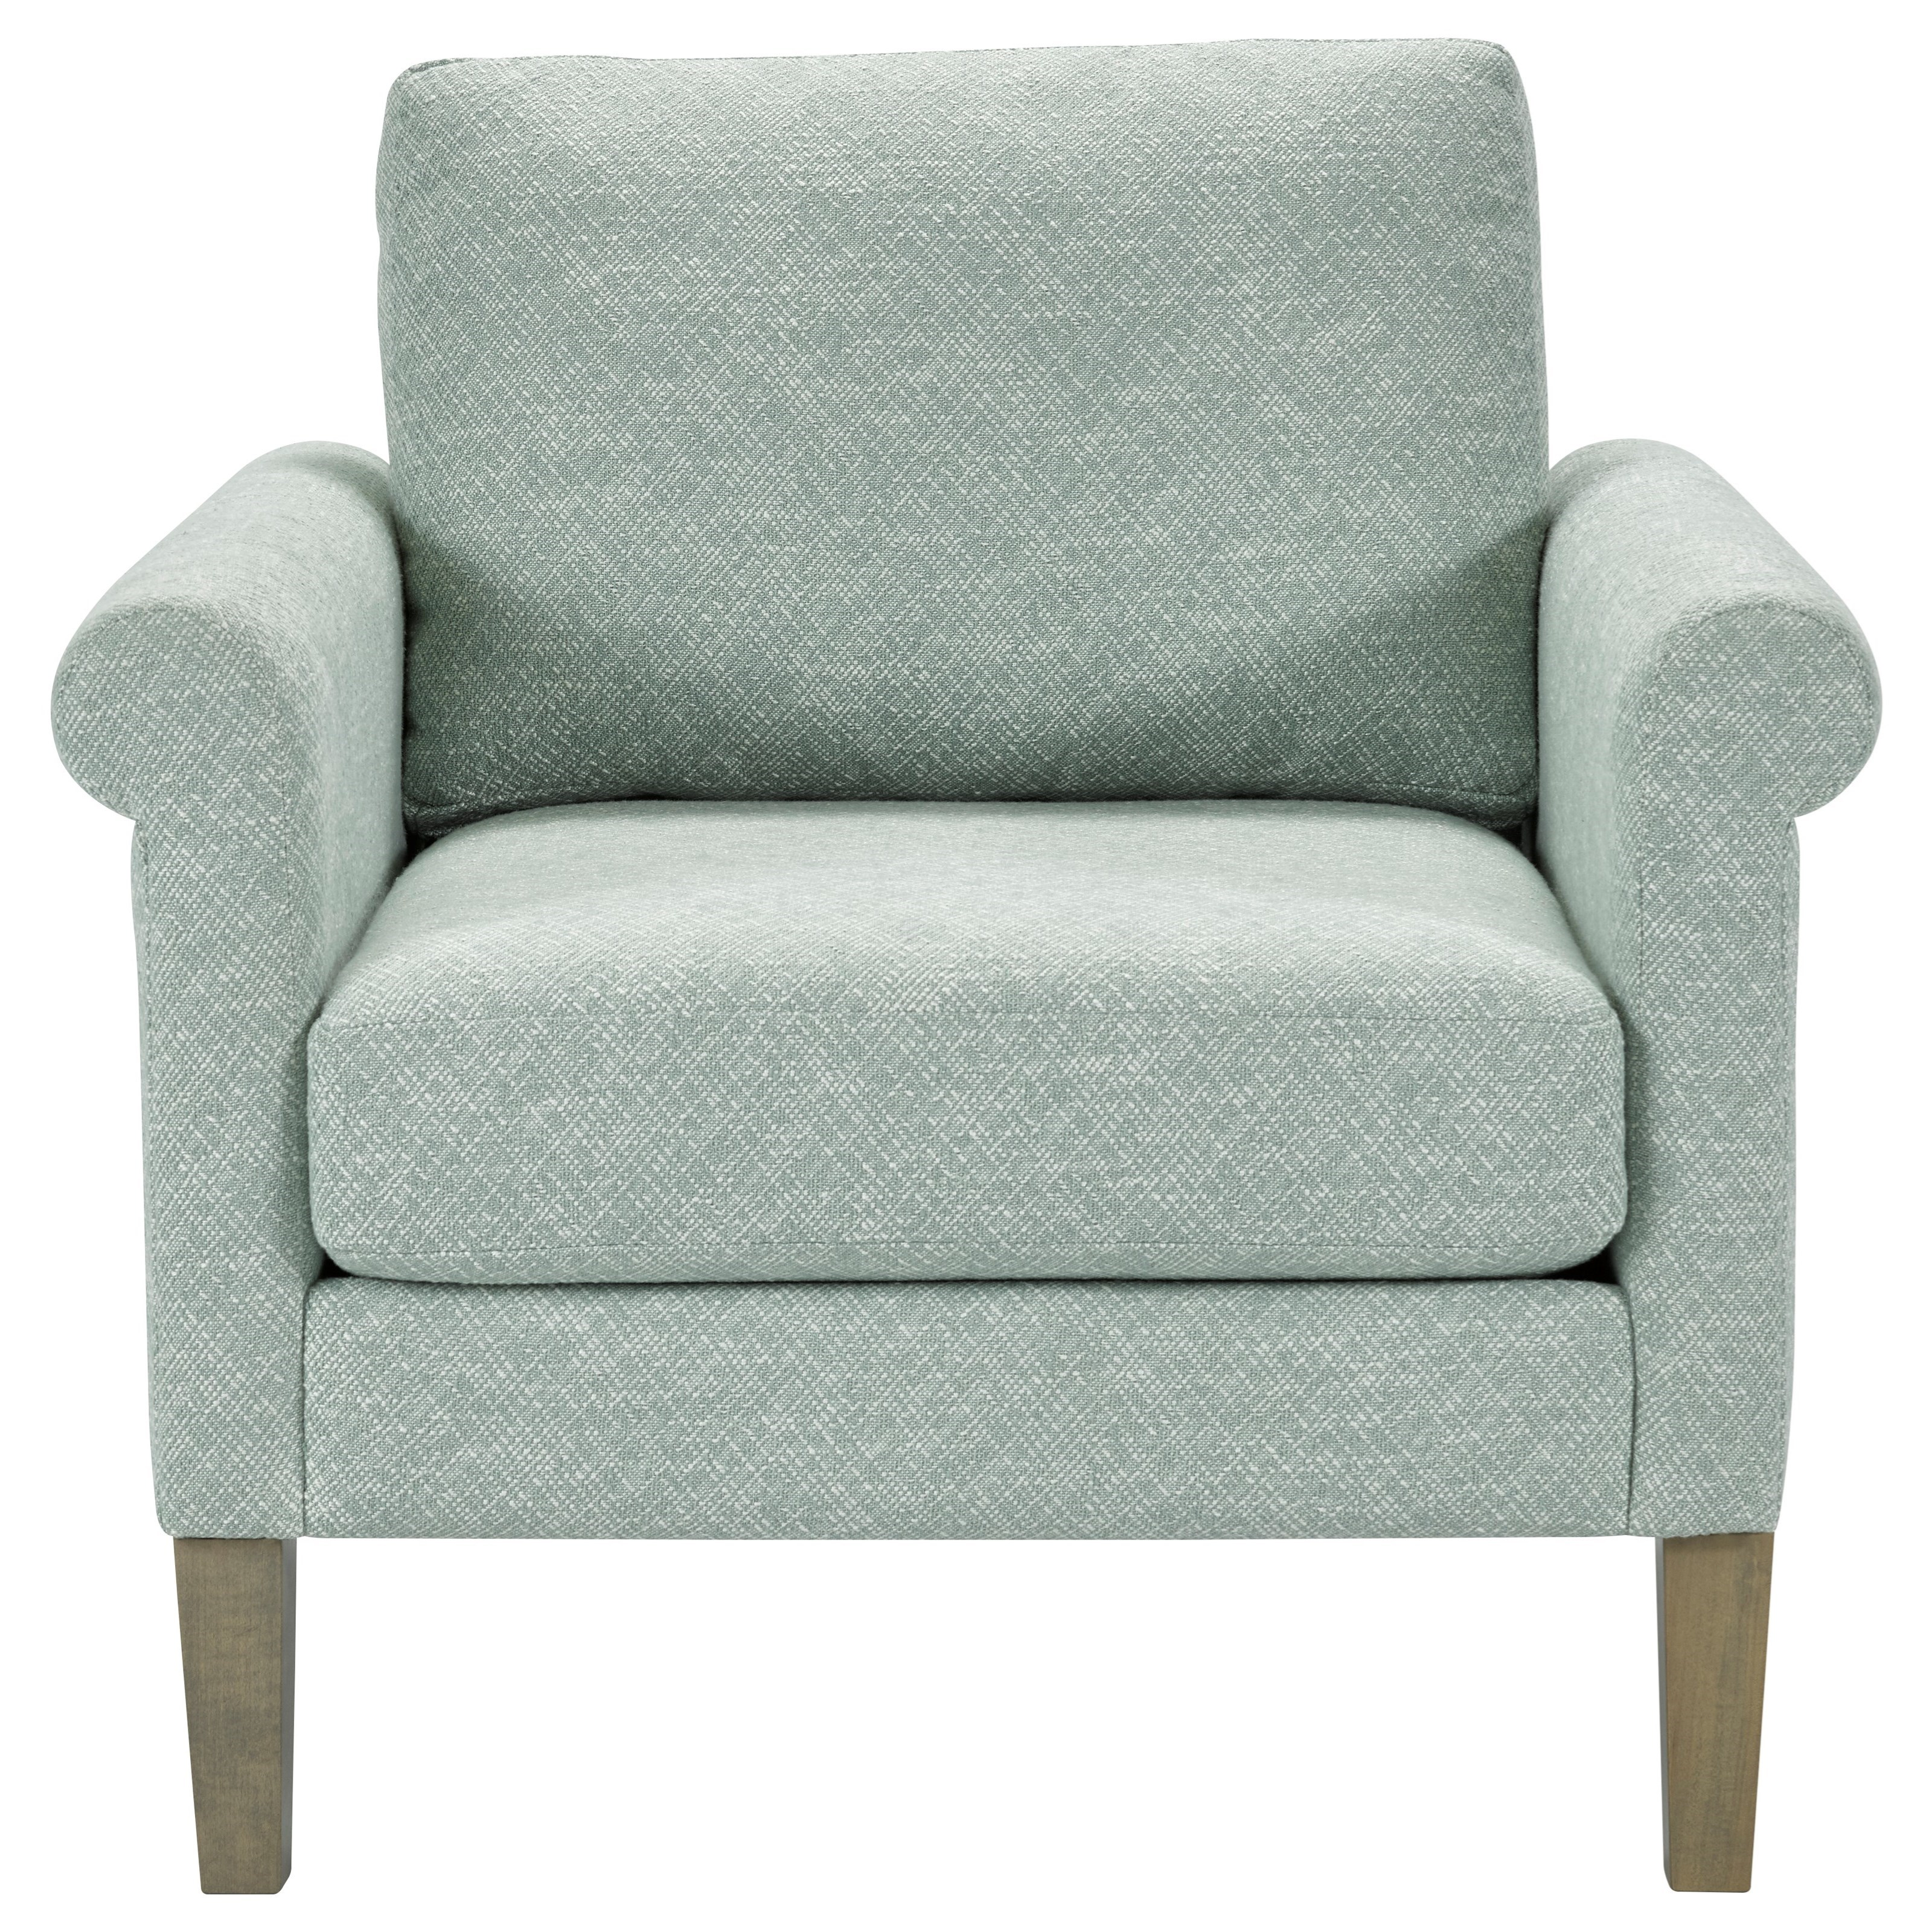 Monday Roll Arm Chair